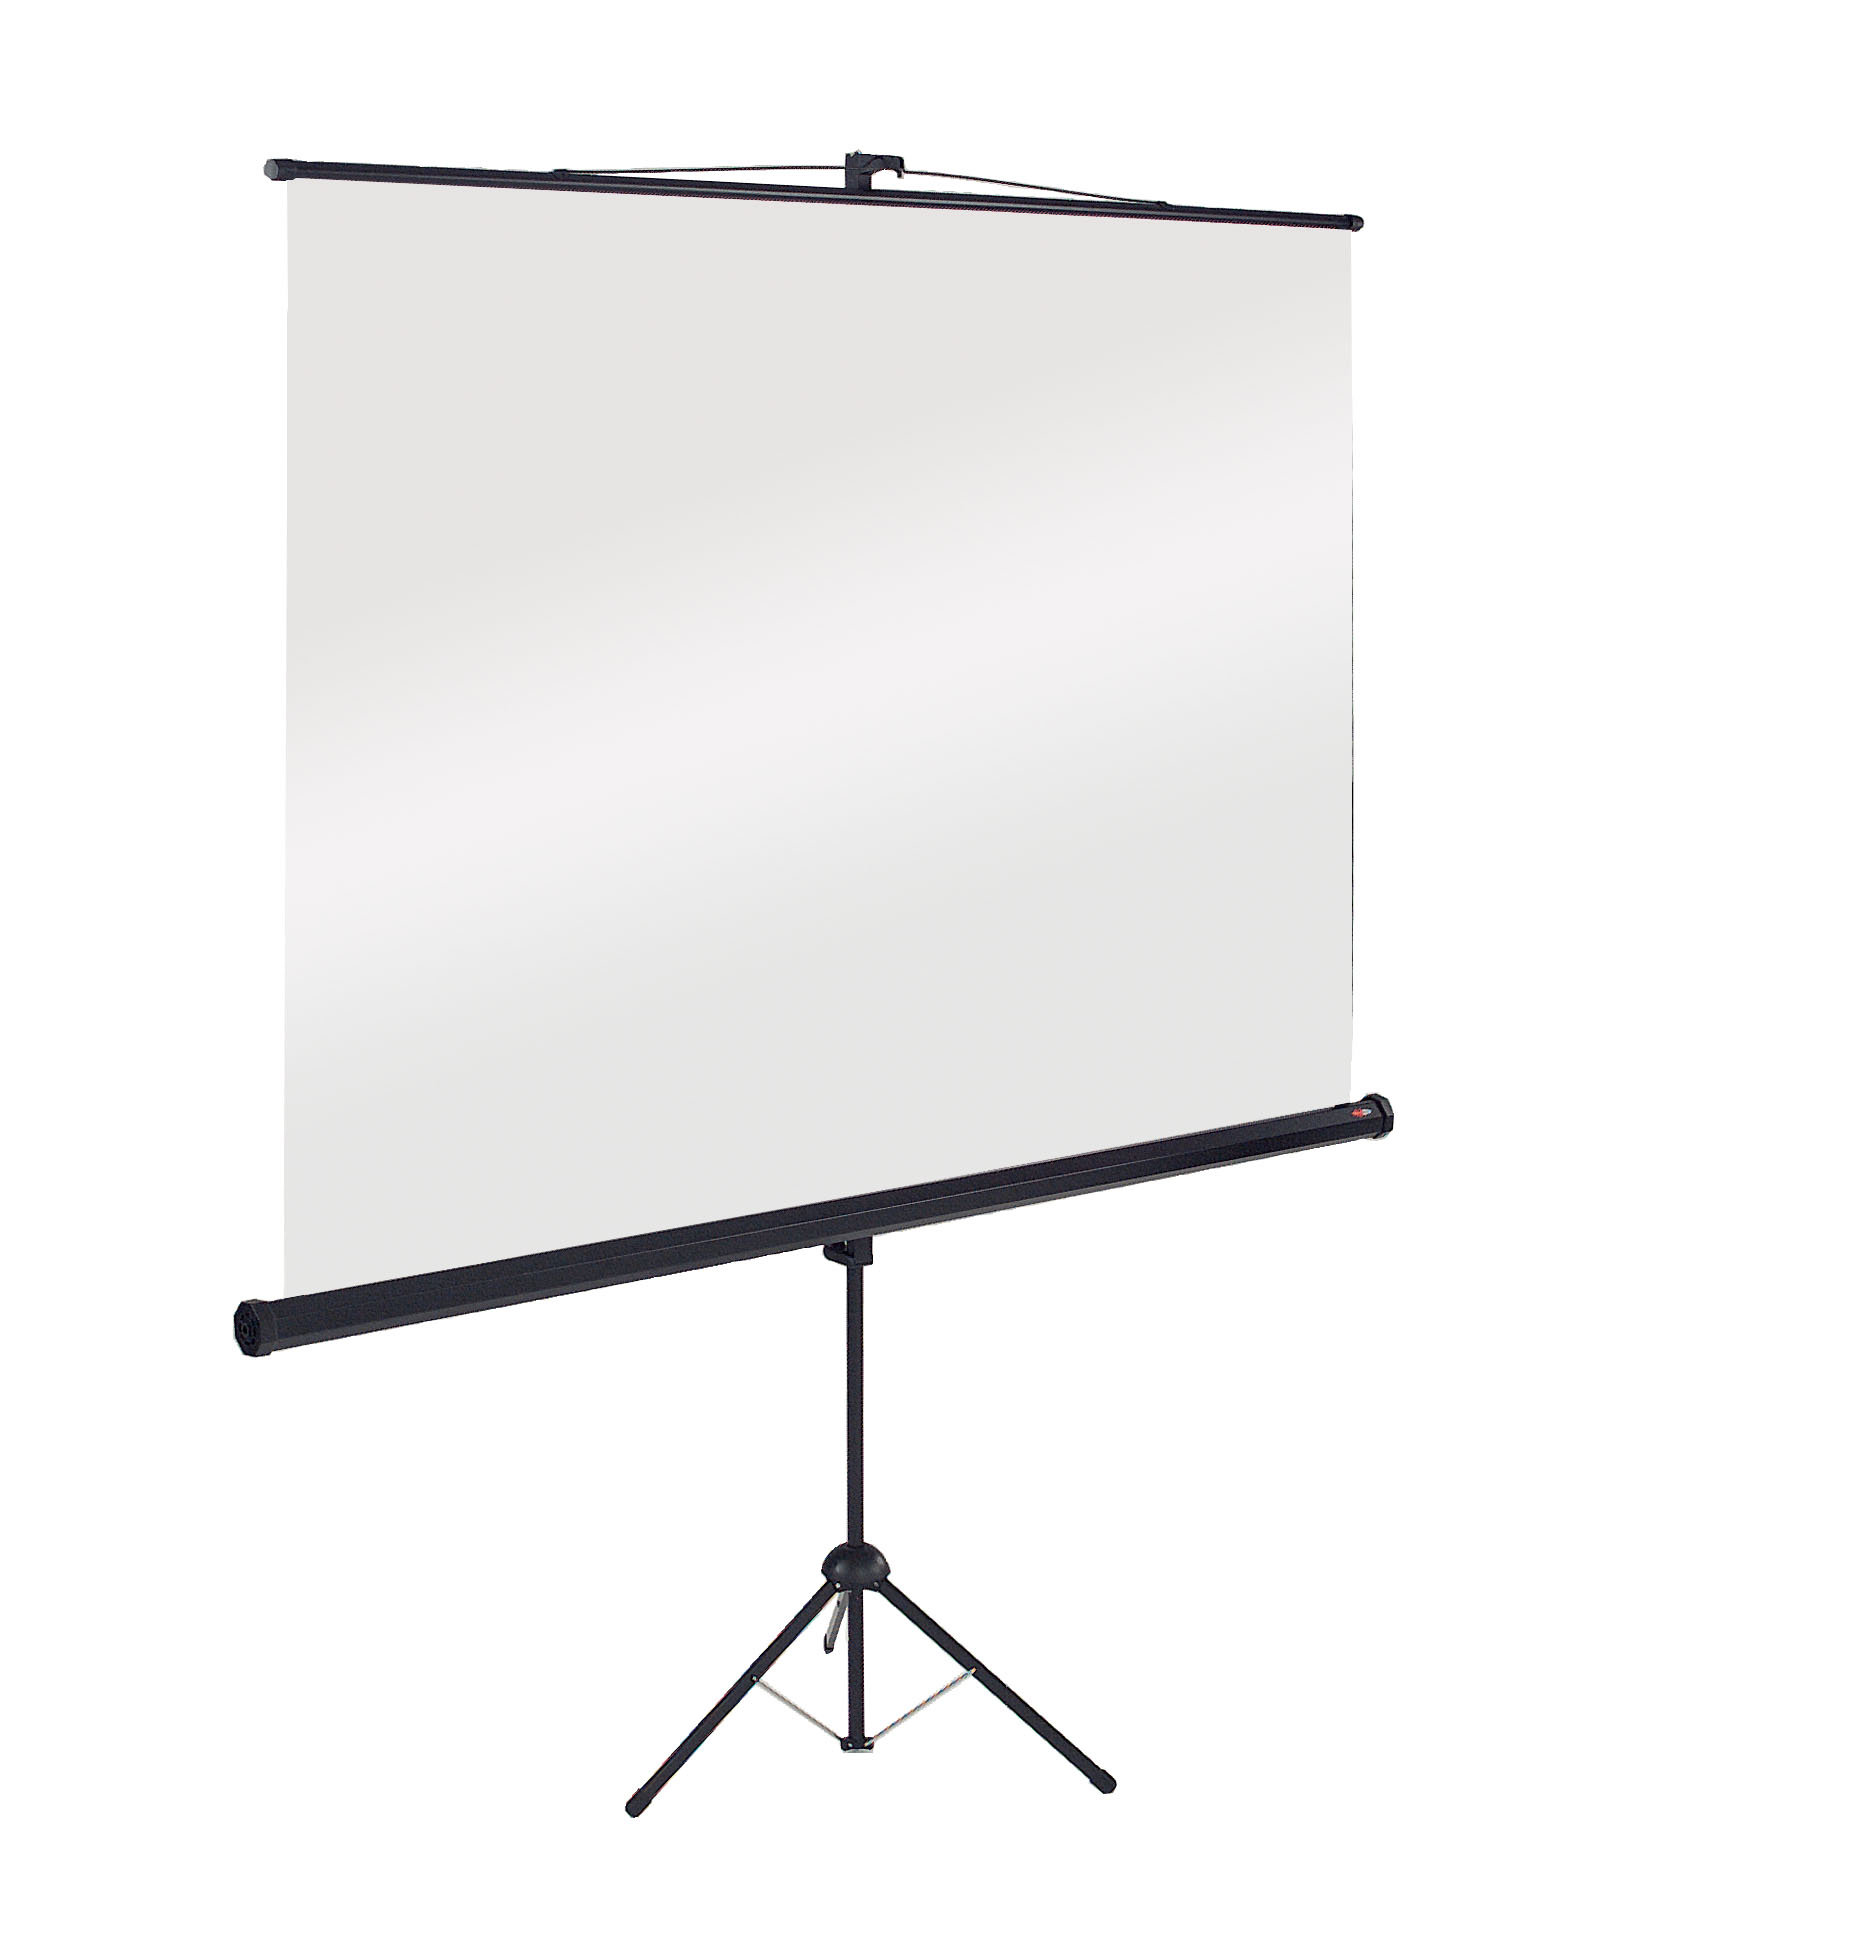 Coffee Tables Reception Coffee Tables For The Office The  Portable projector screen - Welsh Educational Supplies